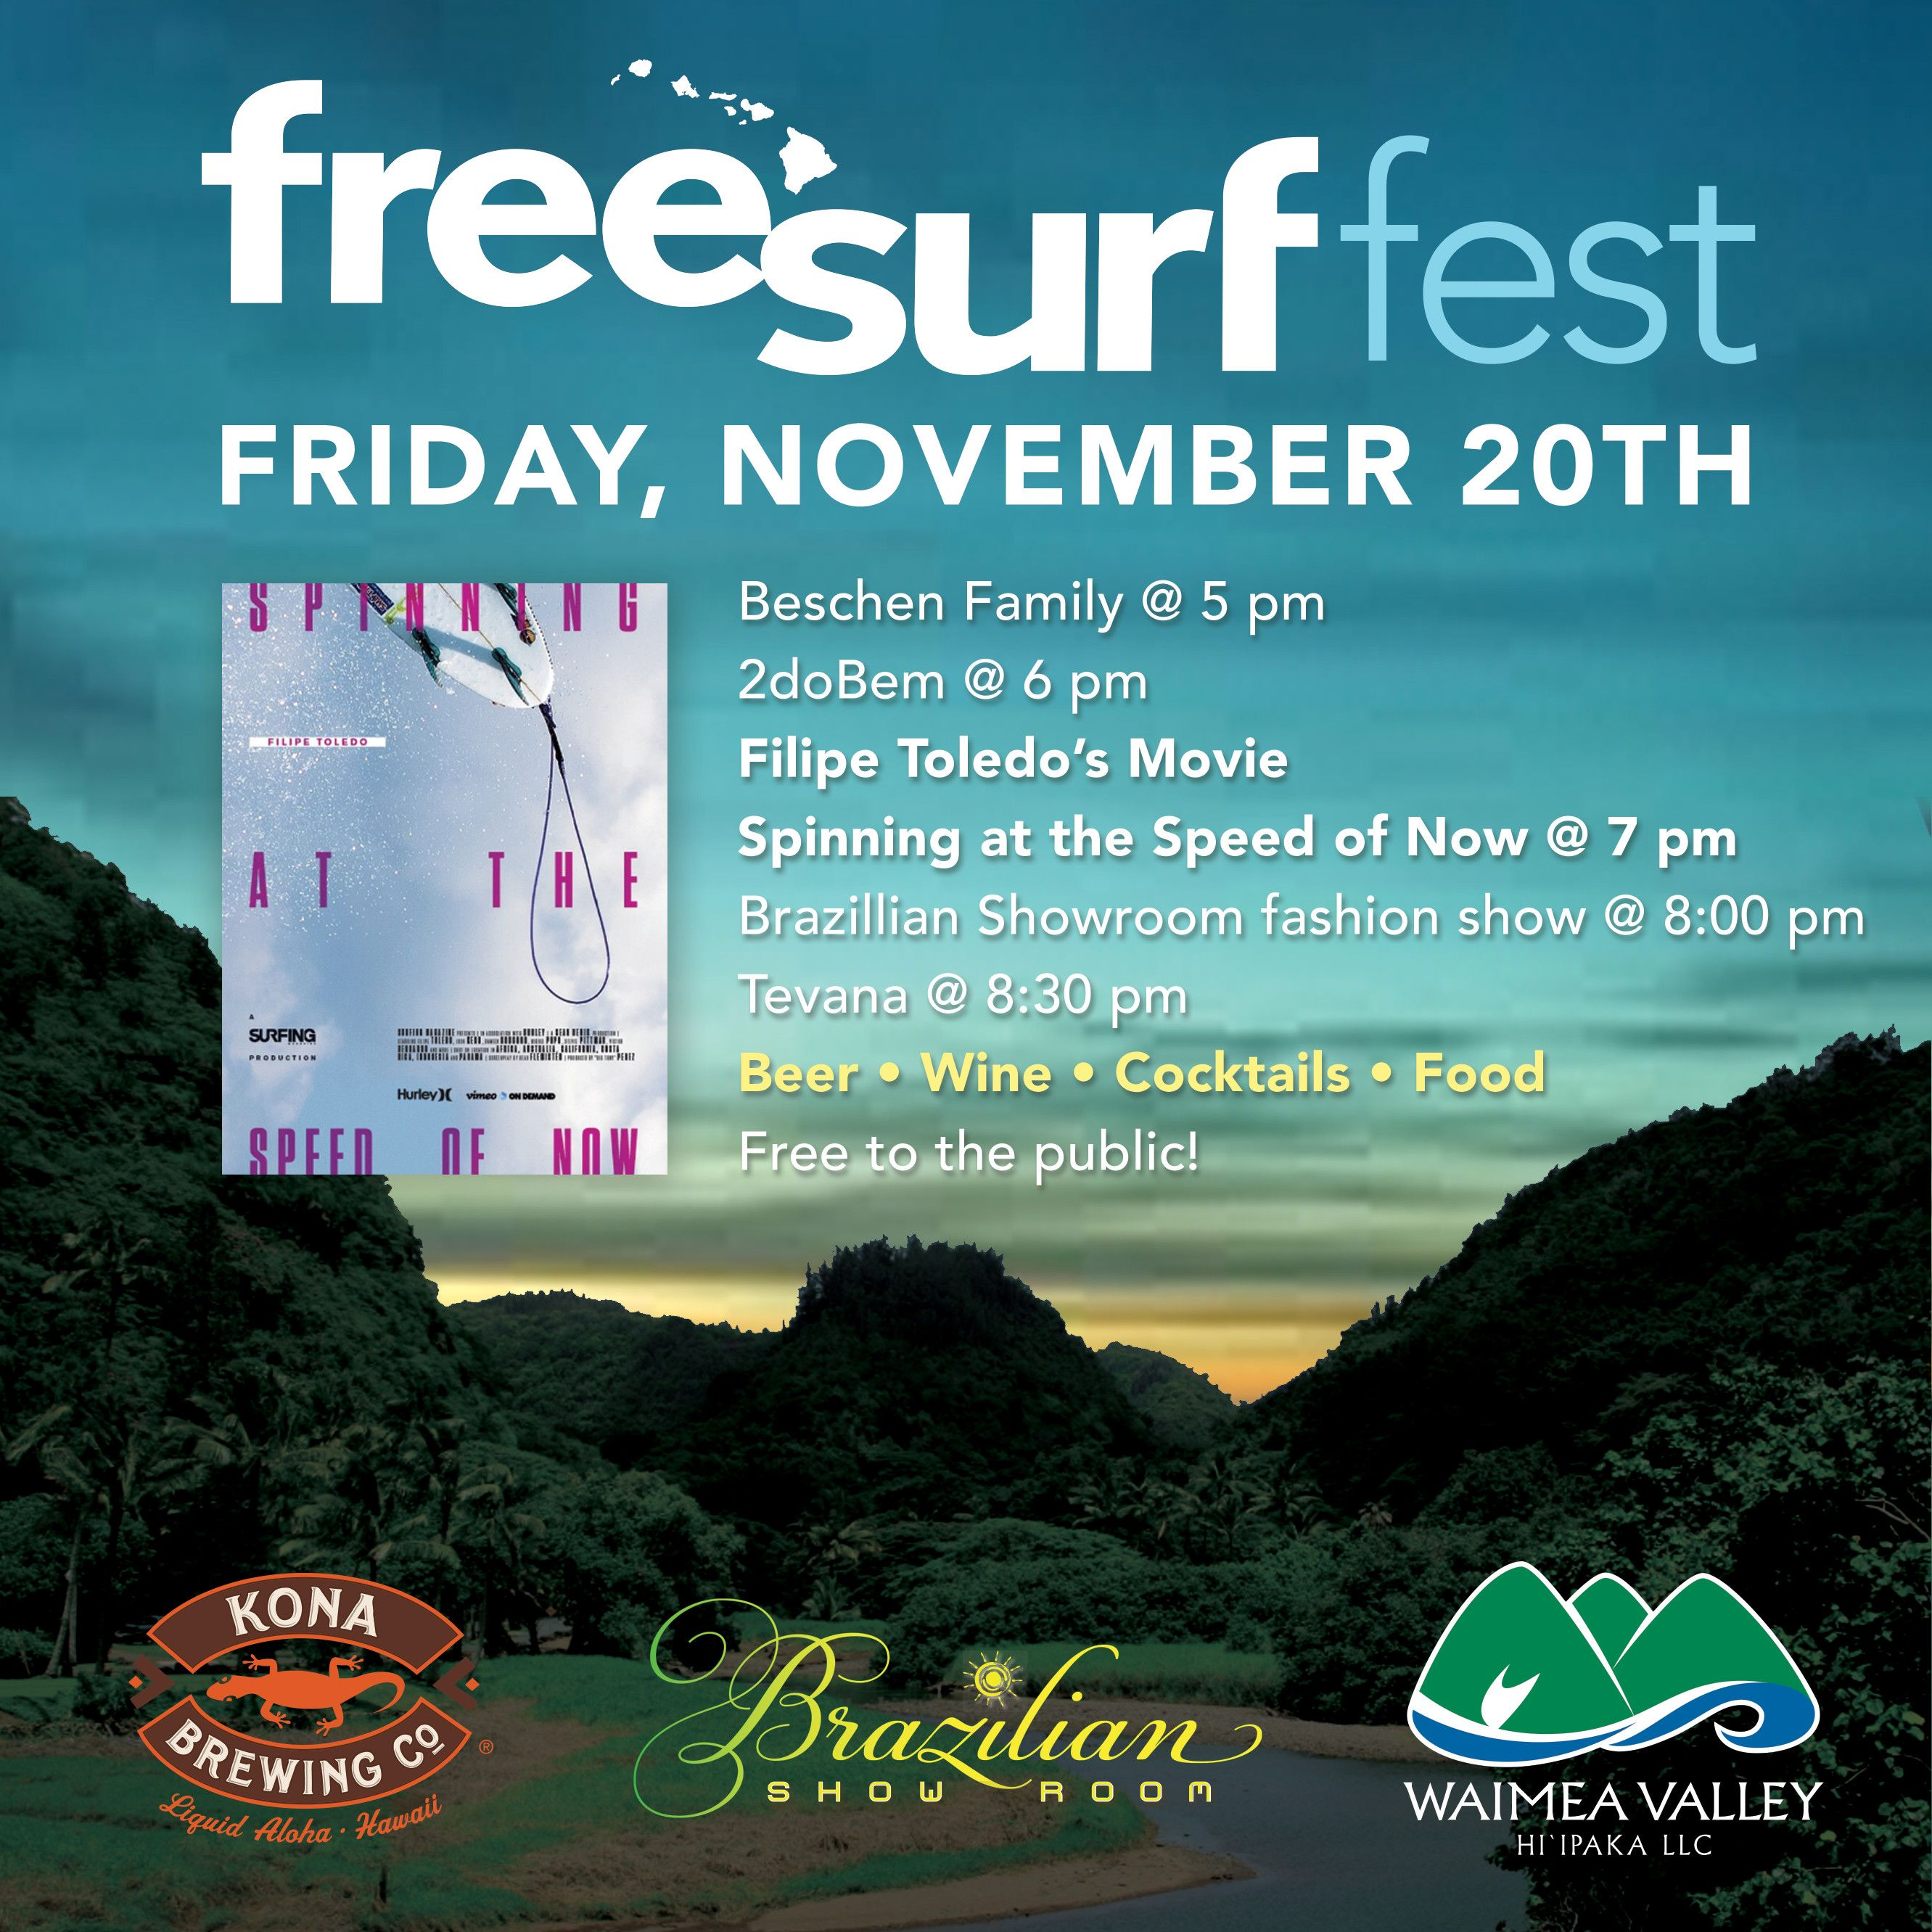 freesurf fest web nov 20